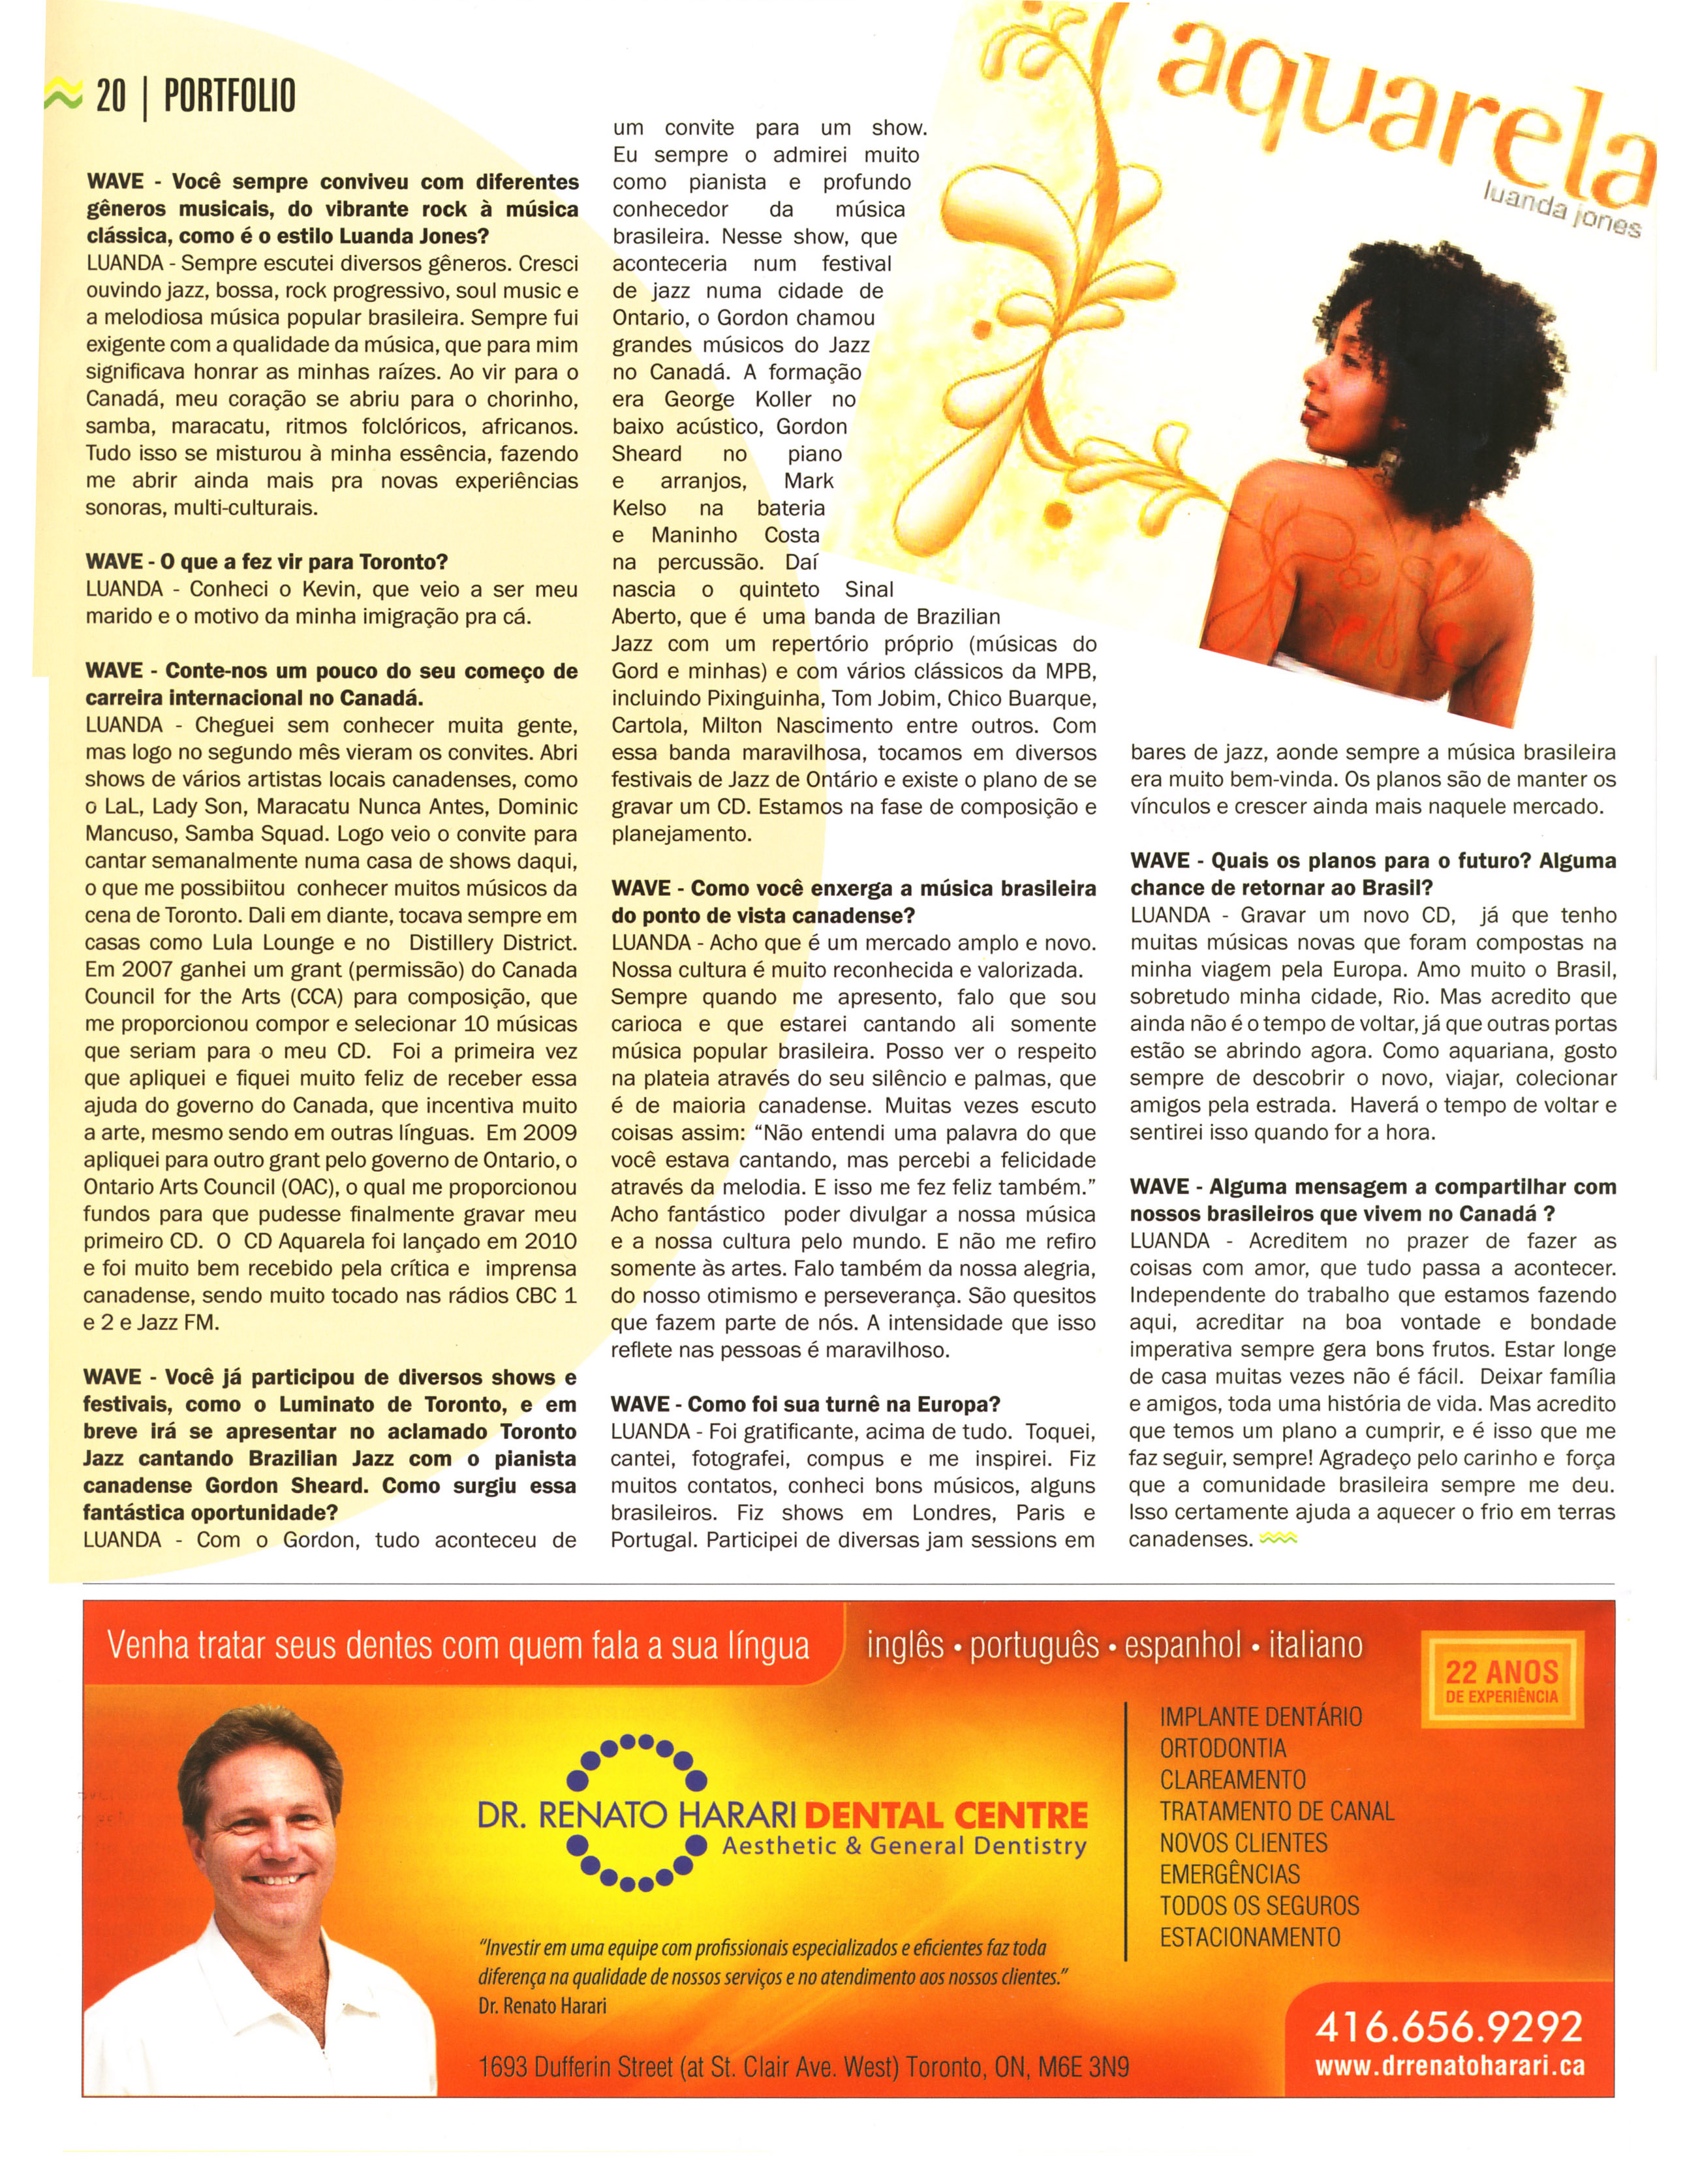 Interview by Cristiana Moretzsohn (Brazilian WAVE Magazine) June 2011